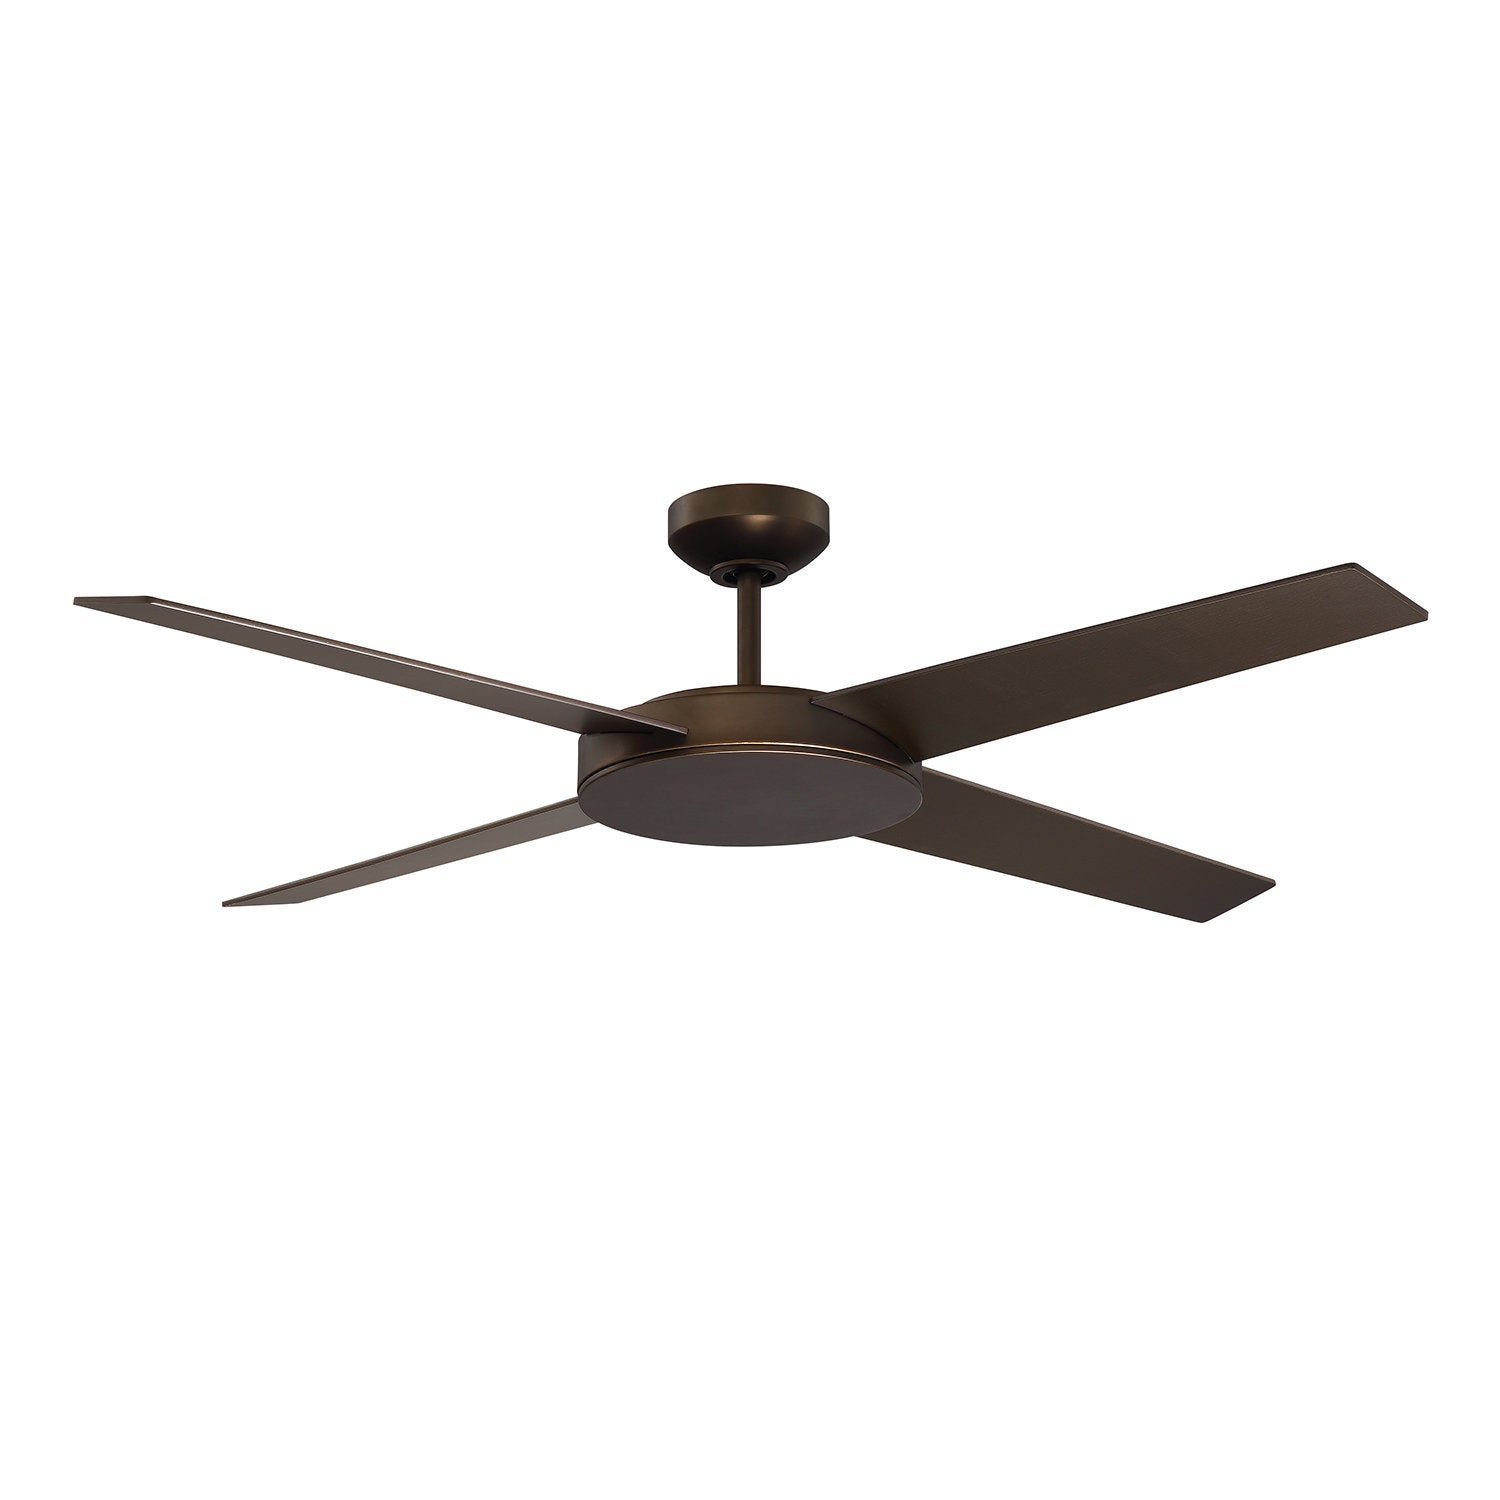 Lopro Architectural Bronze 52 inch LED DC motor Ceiling Fan Free